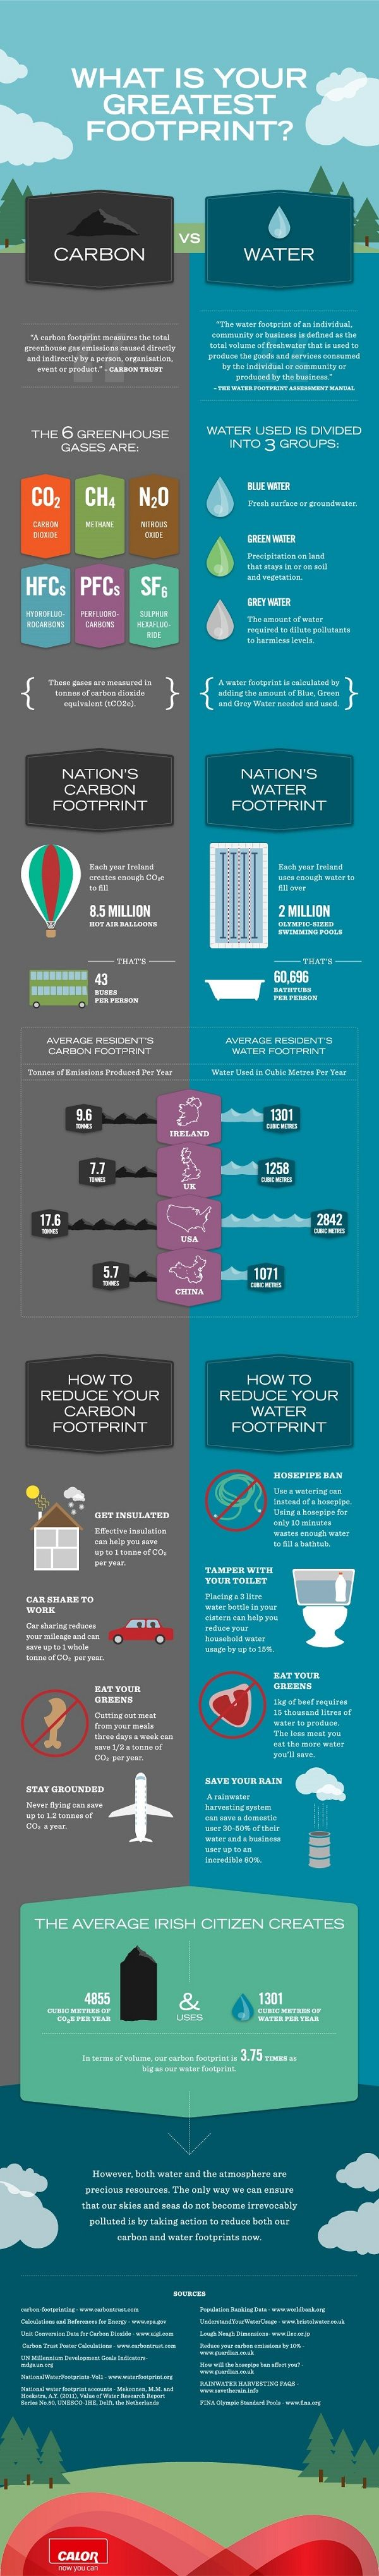 #INFOgraphic > Carbon Footprint vs Water Footprint: Reducing our carbon and water footprints could help us save money but above all Earth. Learn how water and carbon footprint is assessed, what is the average per capita carbon emission and water consumption in UK, USA and China and what we can do to better control the situation.  > http://infographicsmania.com/carbon-footprint-vs-water-footprint/